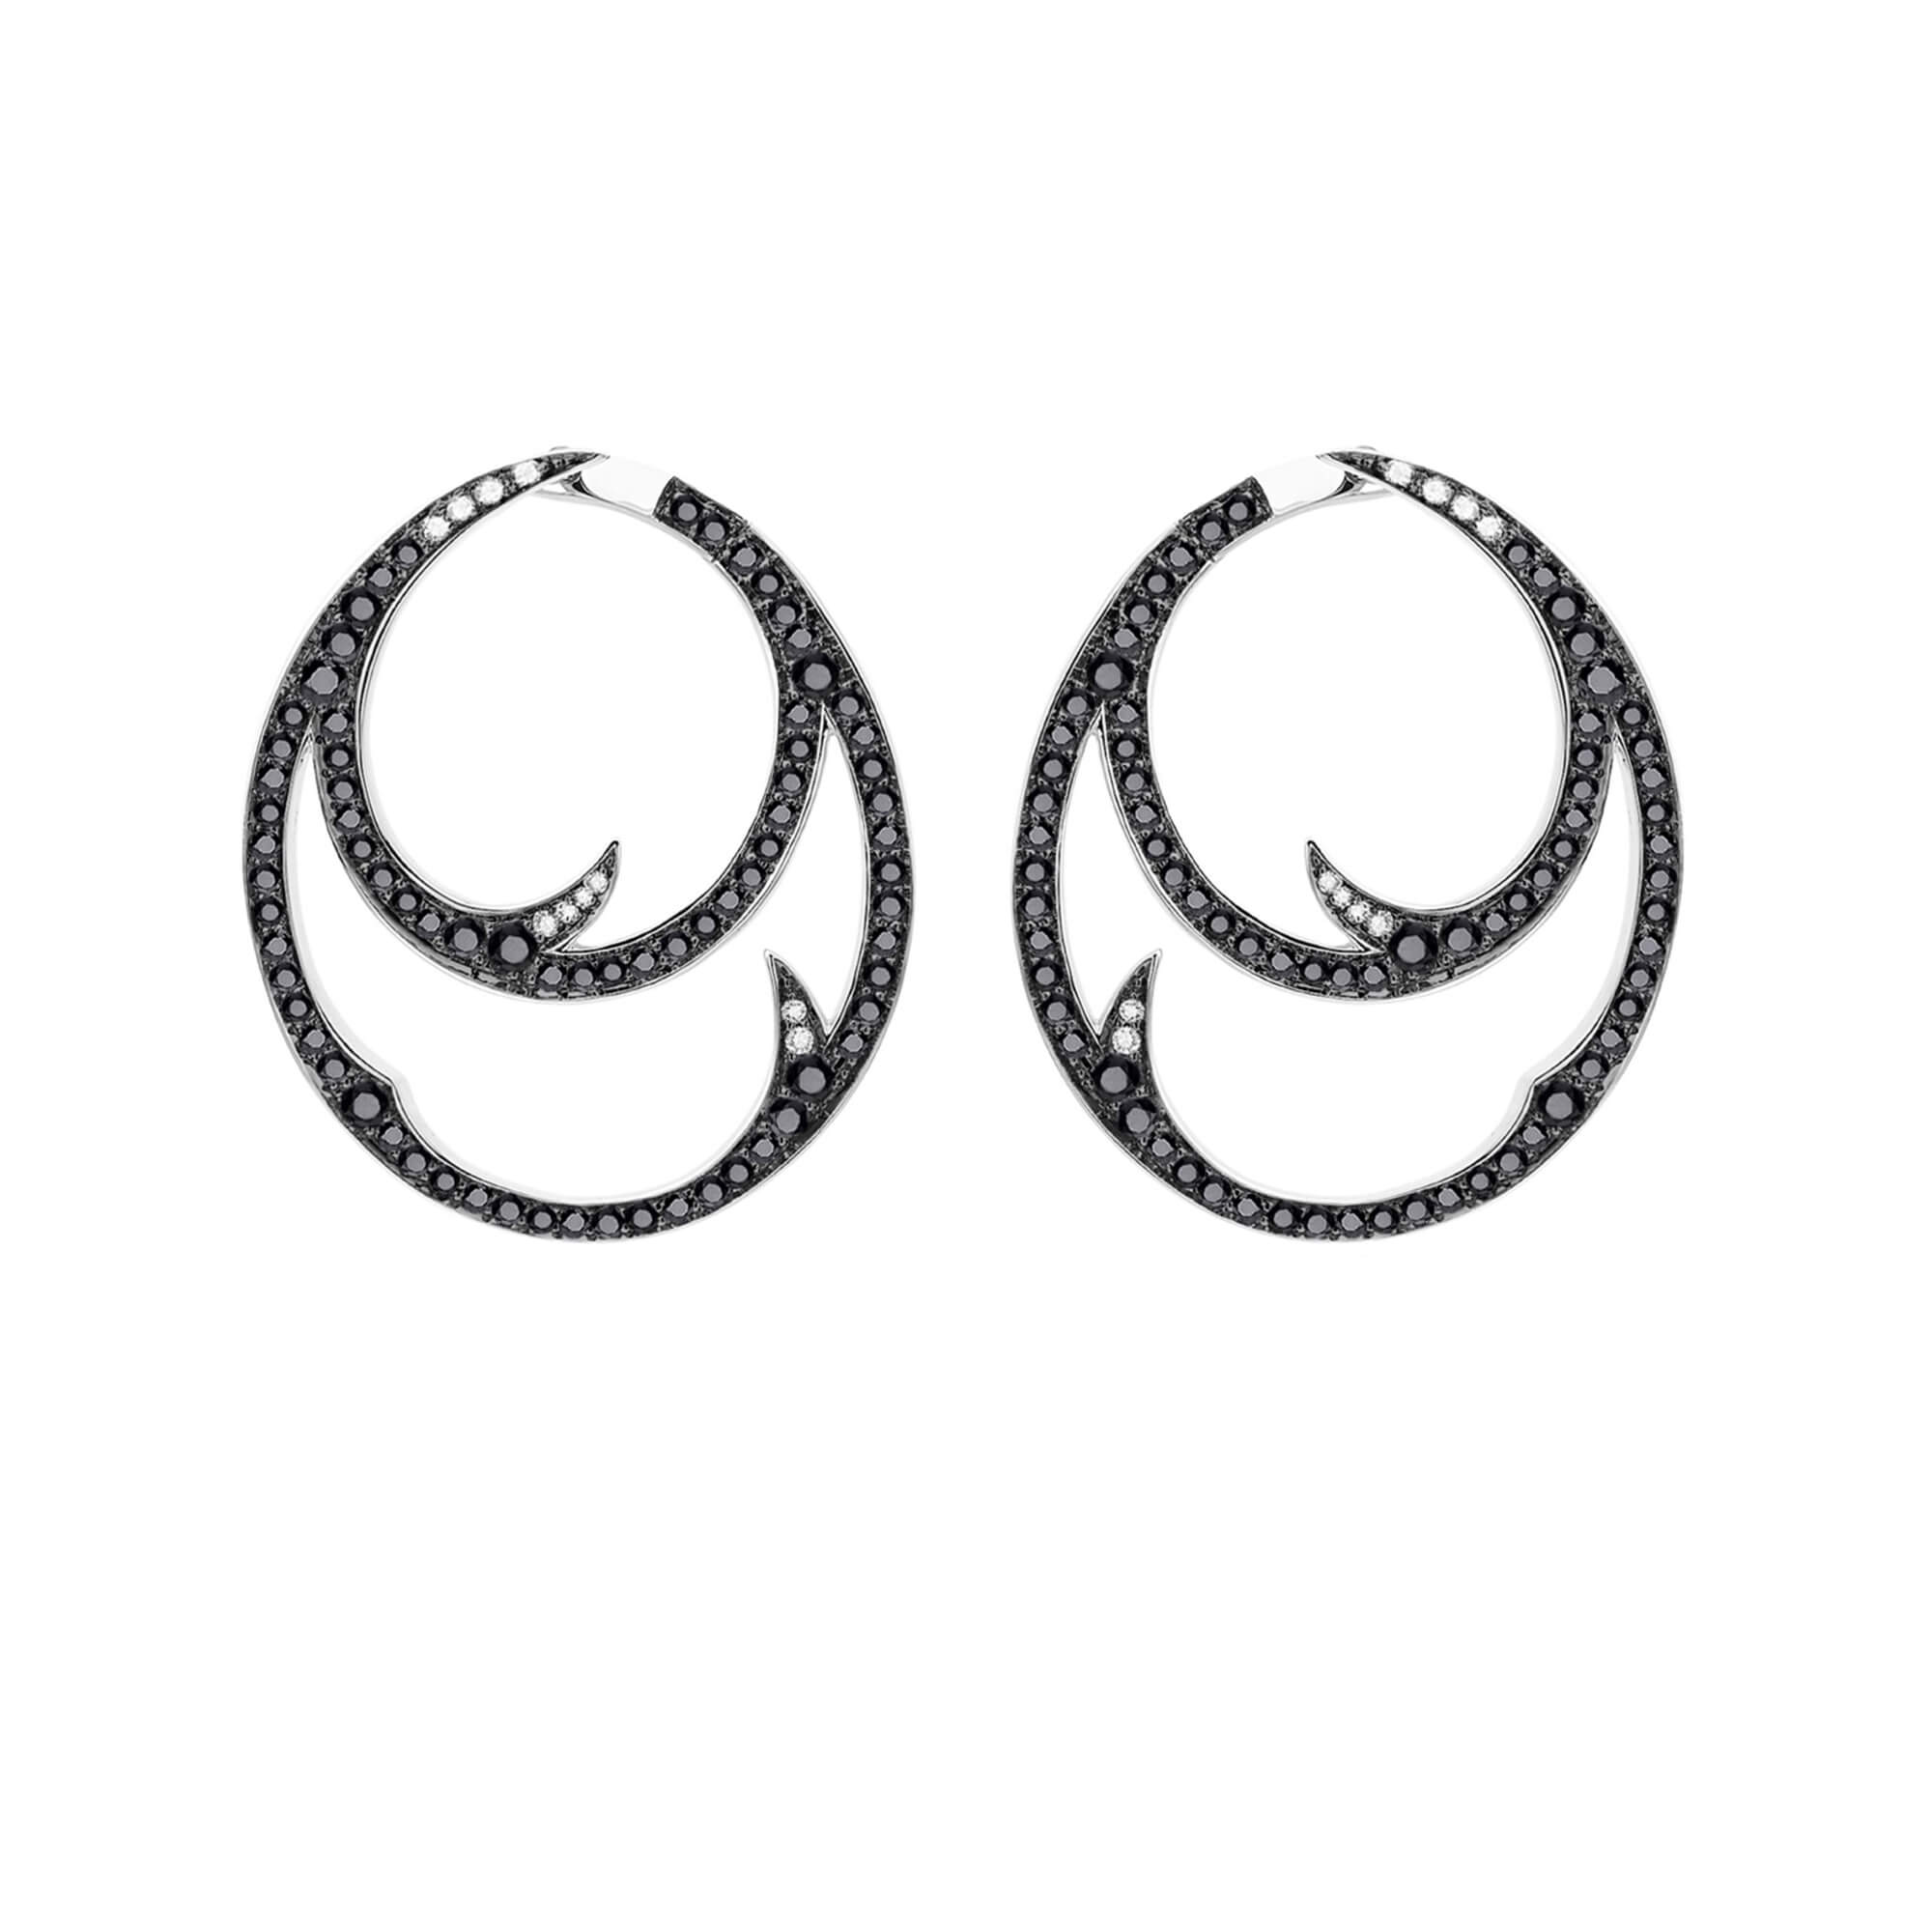 White Gold Double Hoop Earrings with Black Diamond | Thorn